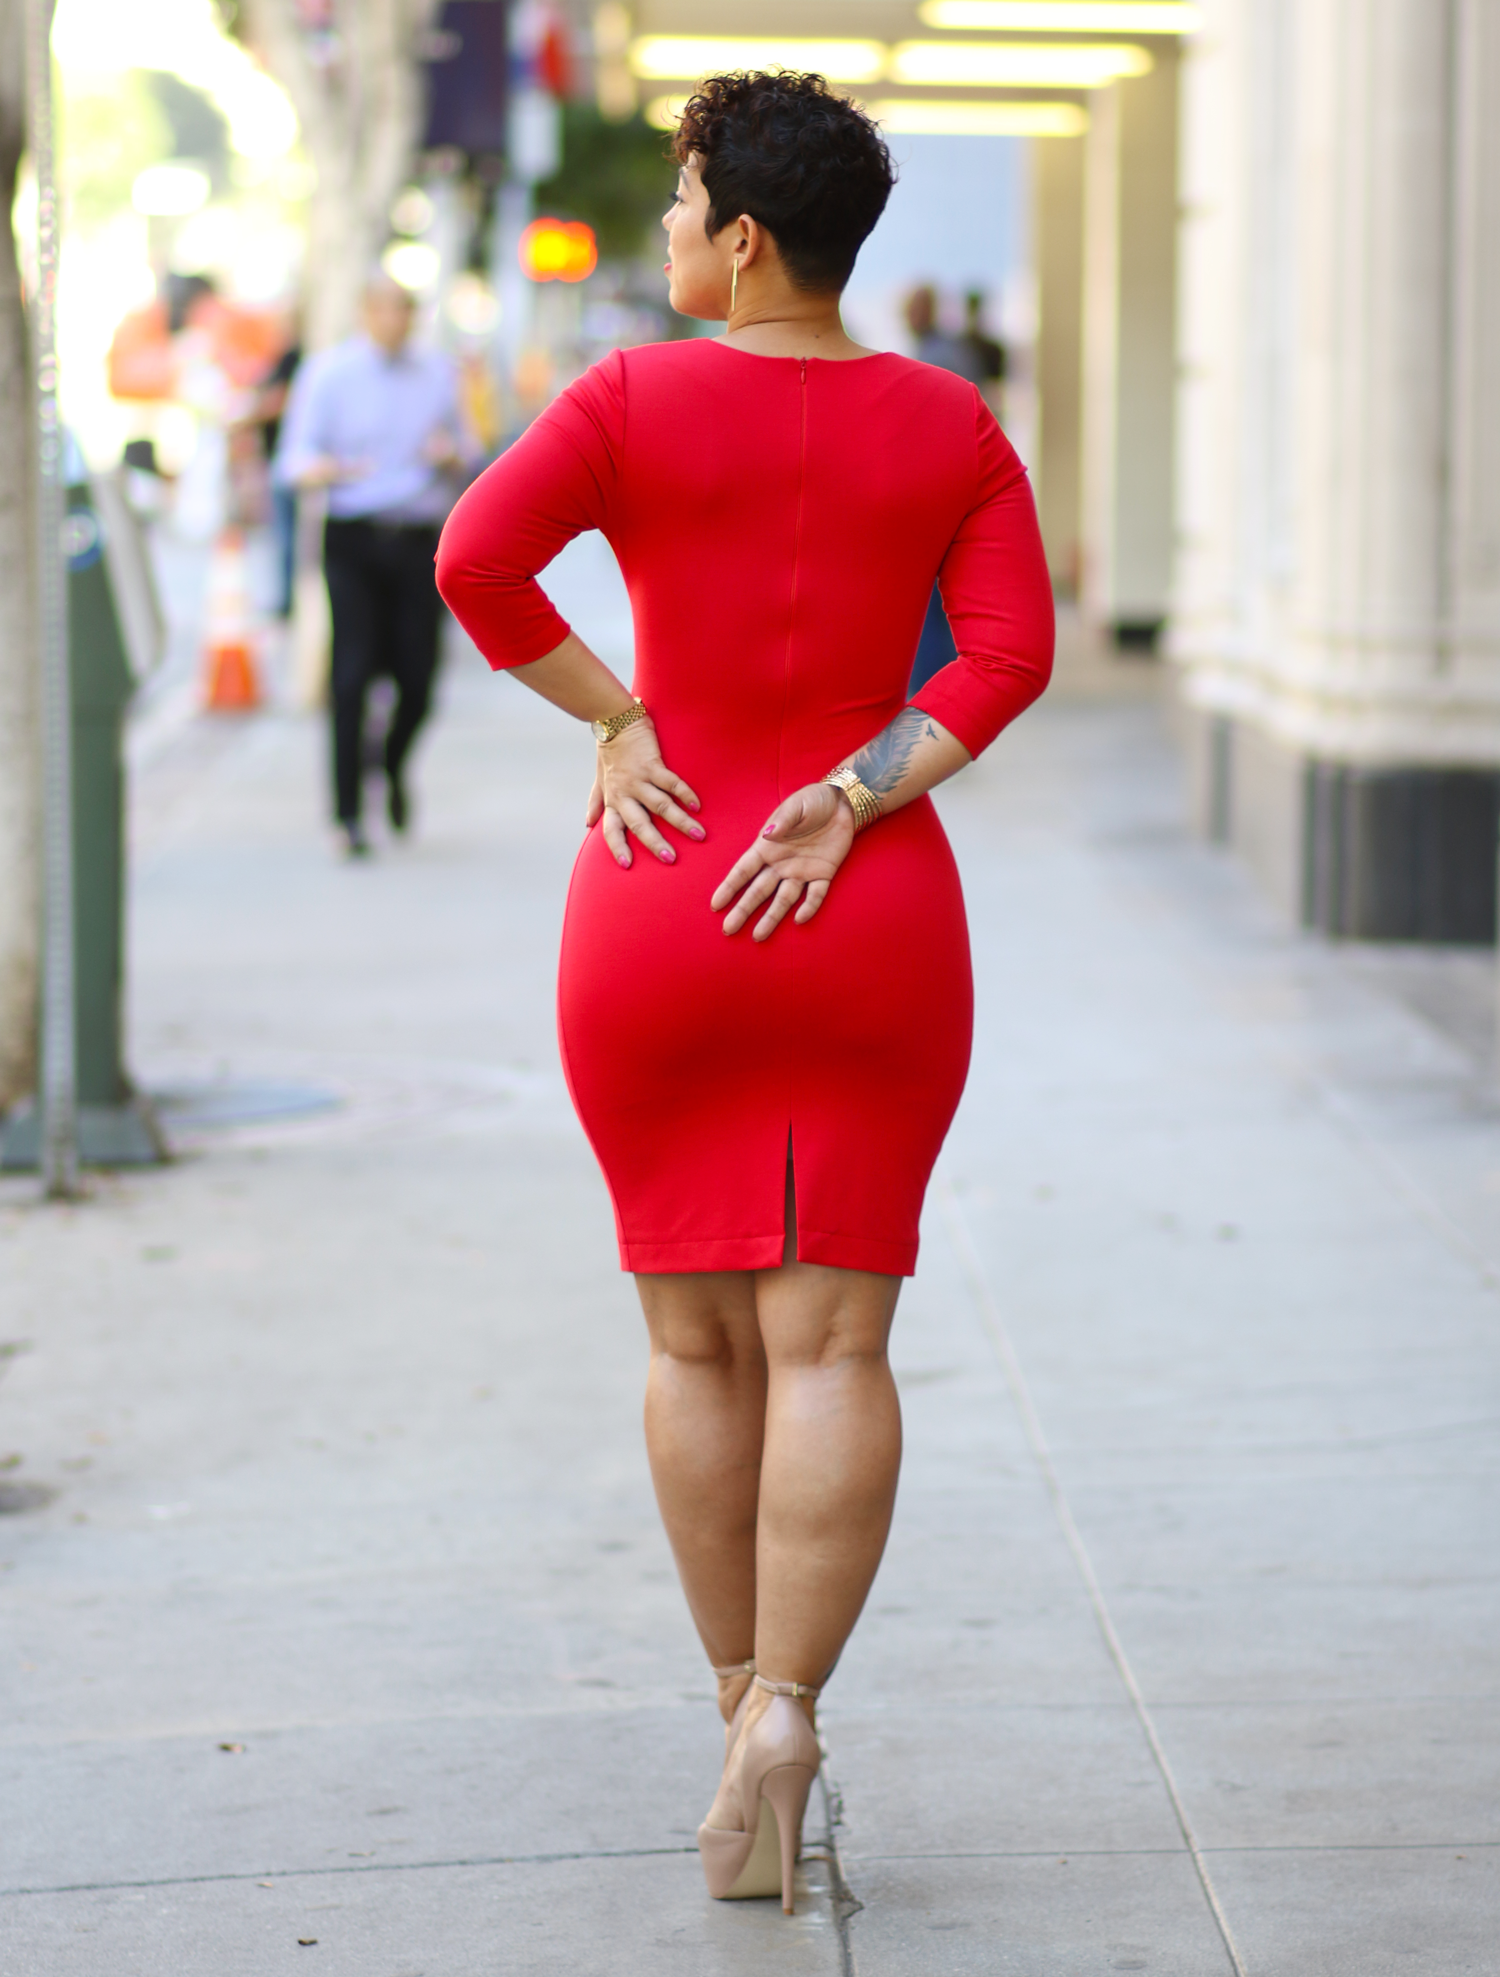 Mimi g style red dress on red